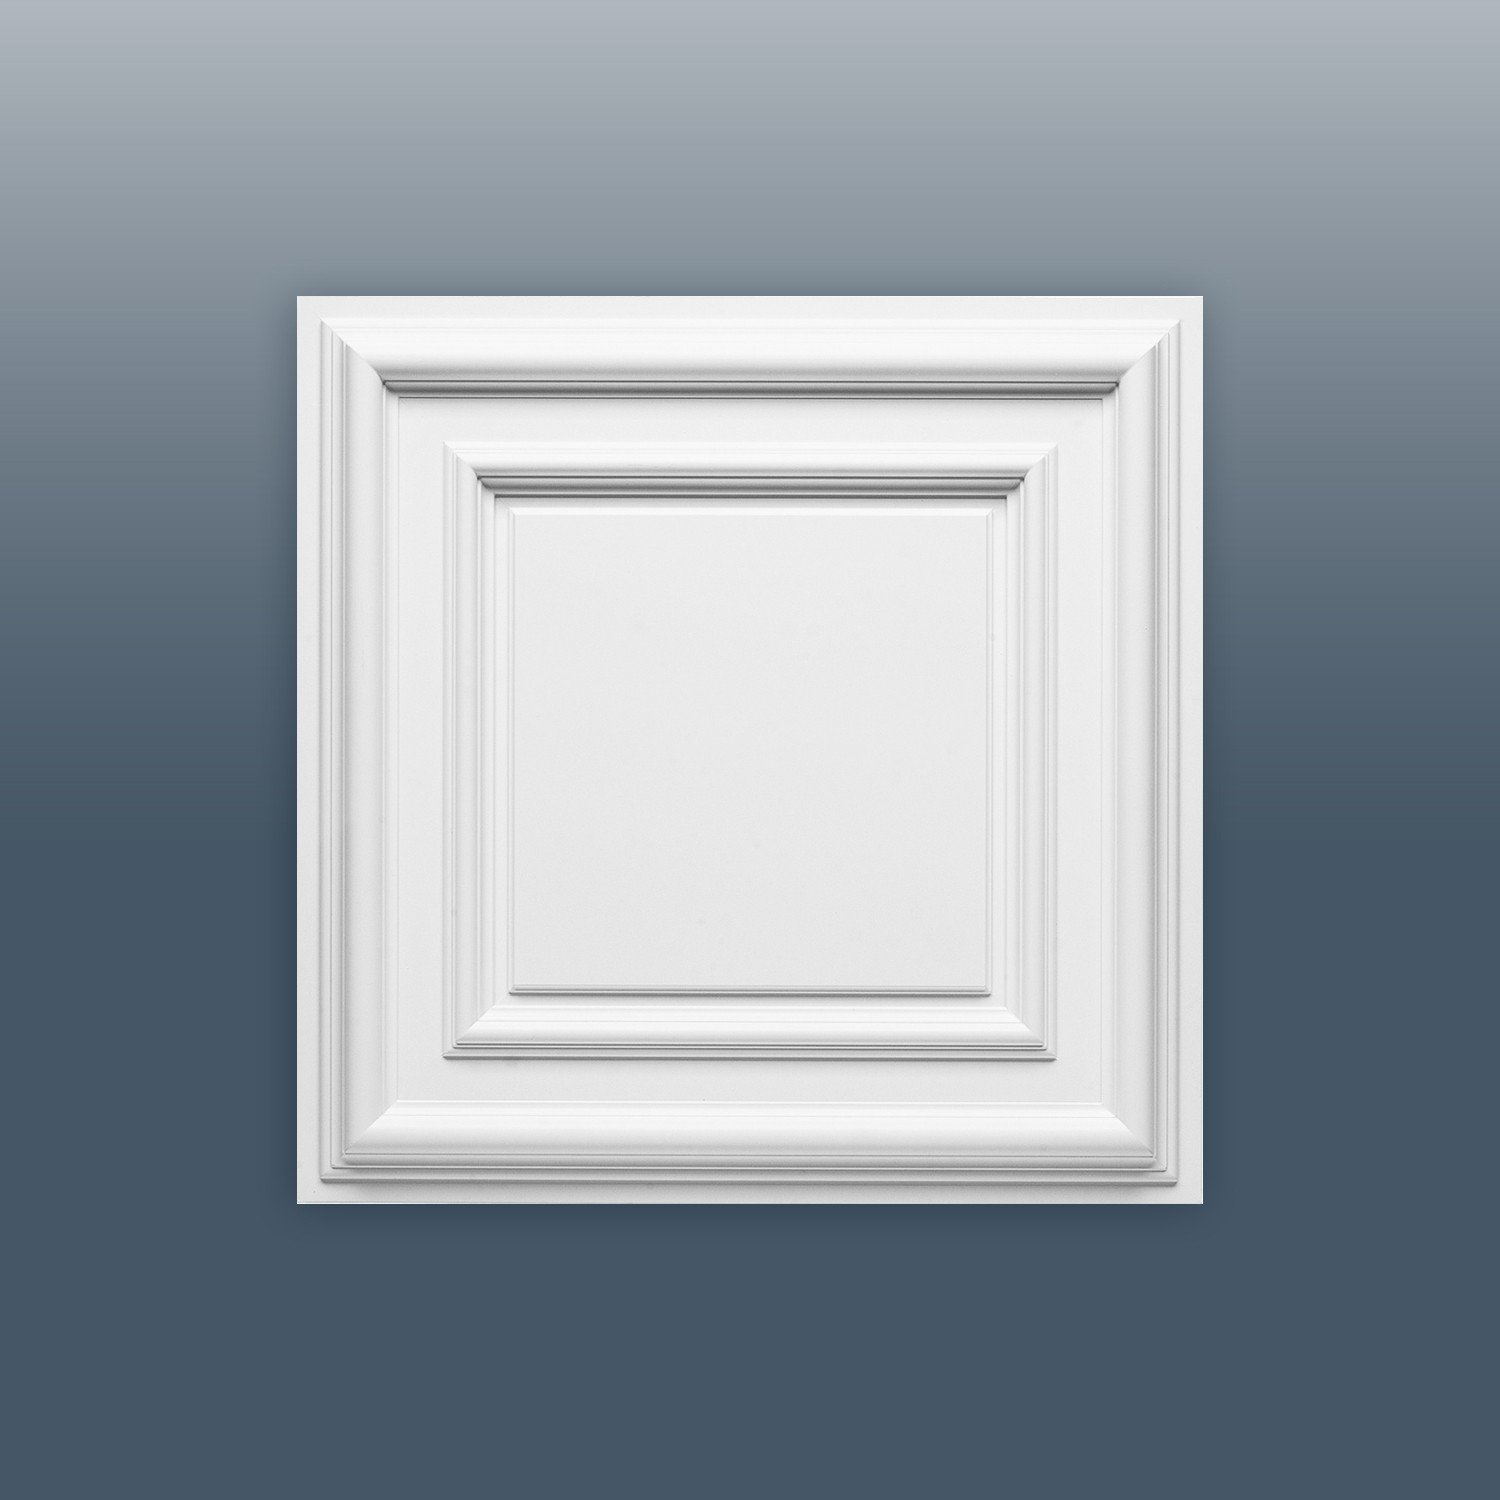 Ceiling Tile Door panel Wall panel 3D Orac Decor F30 LUXXUS Decoration Element for ceiling or wall 60 x 60 cm